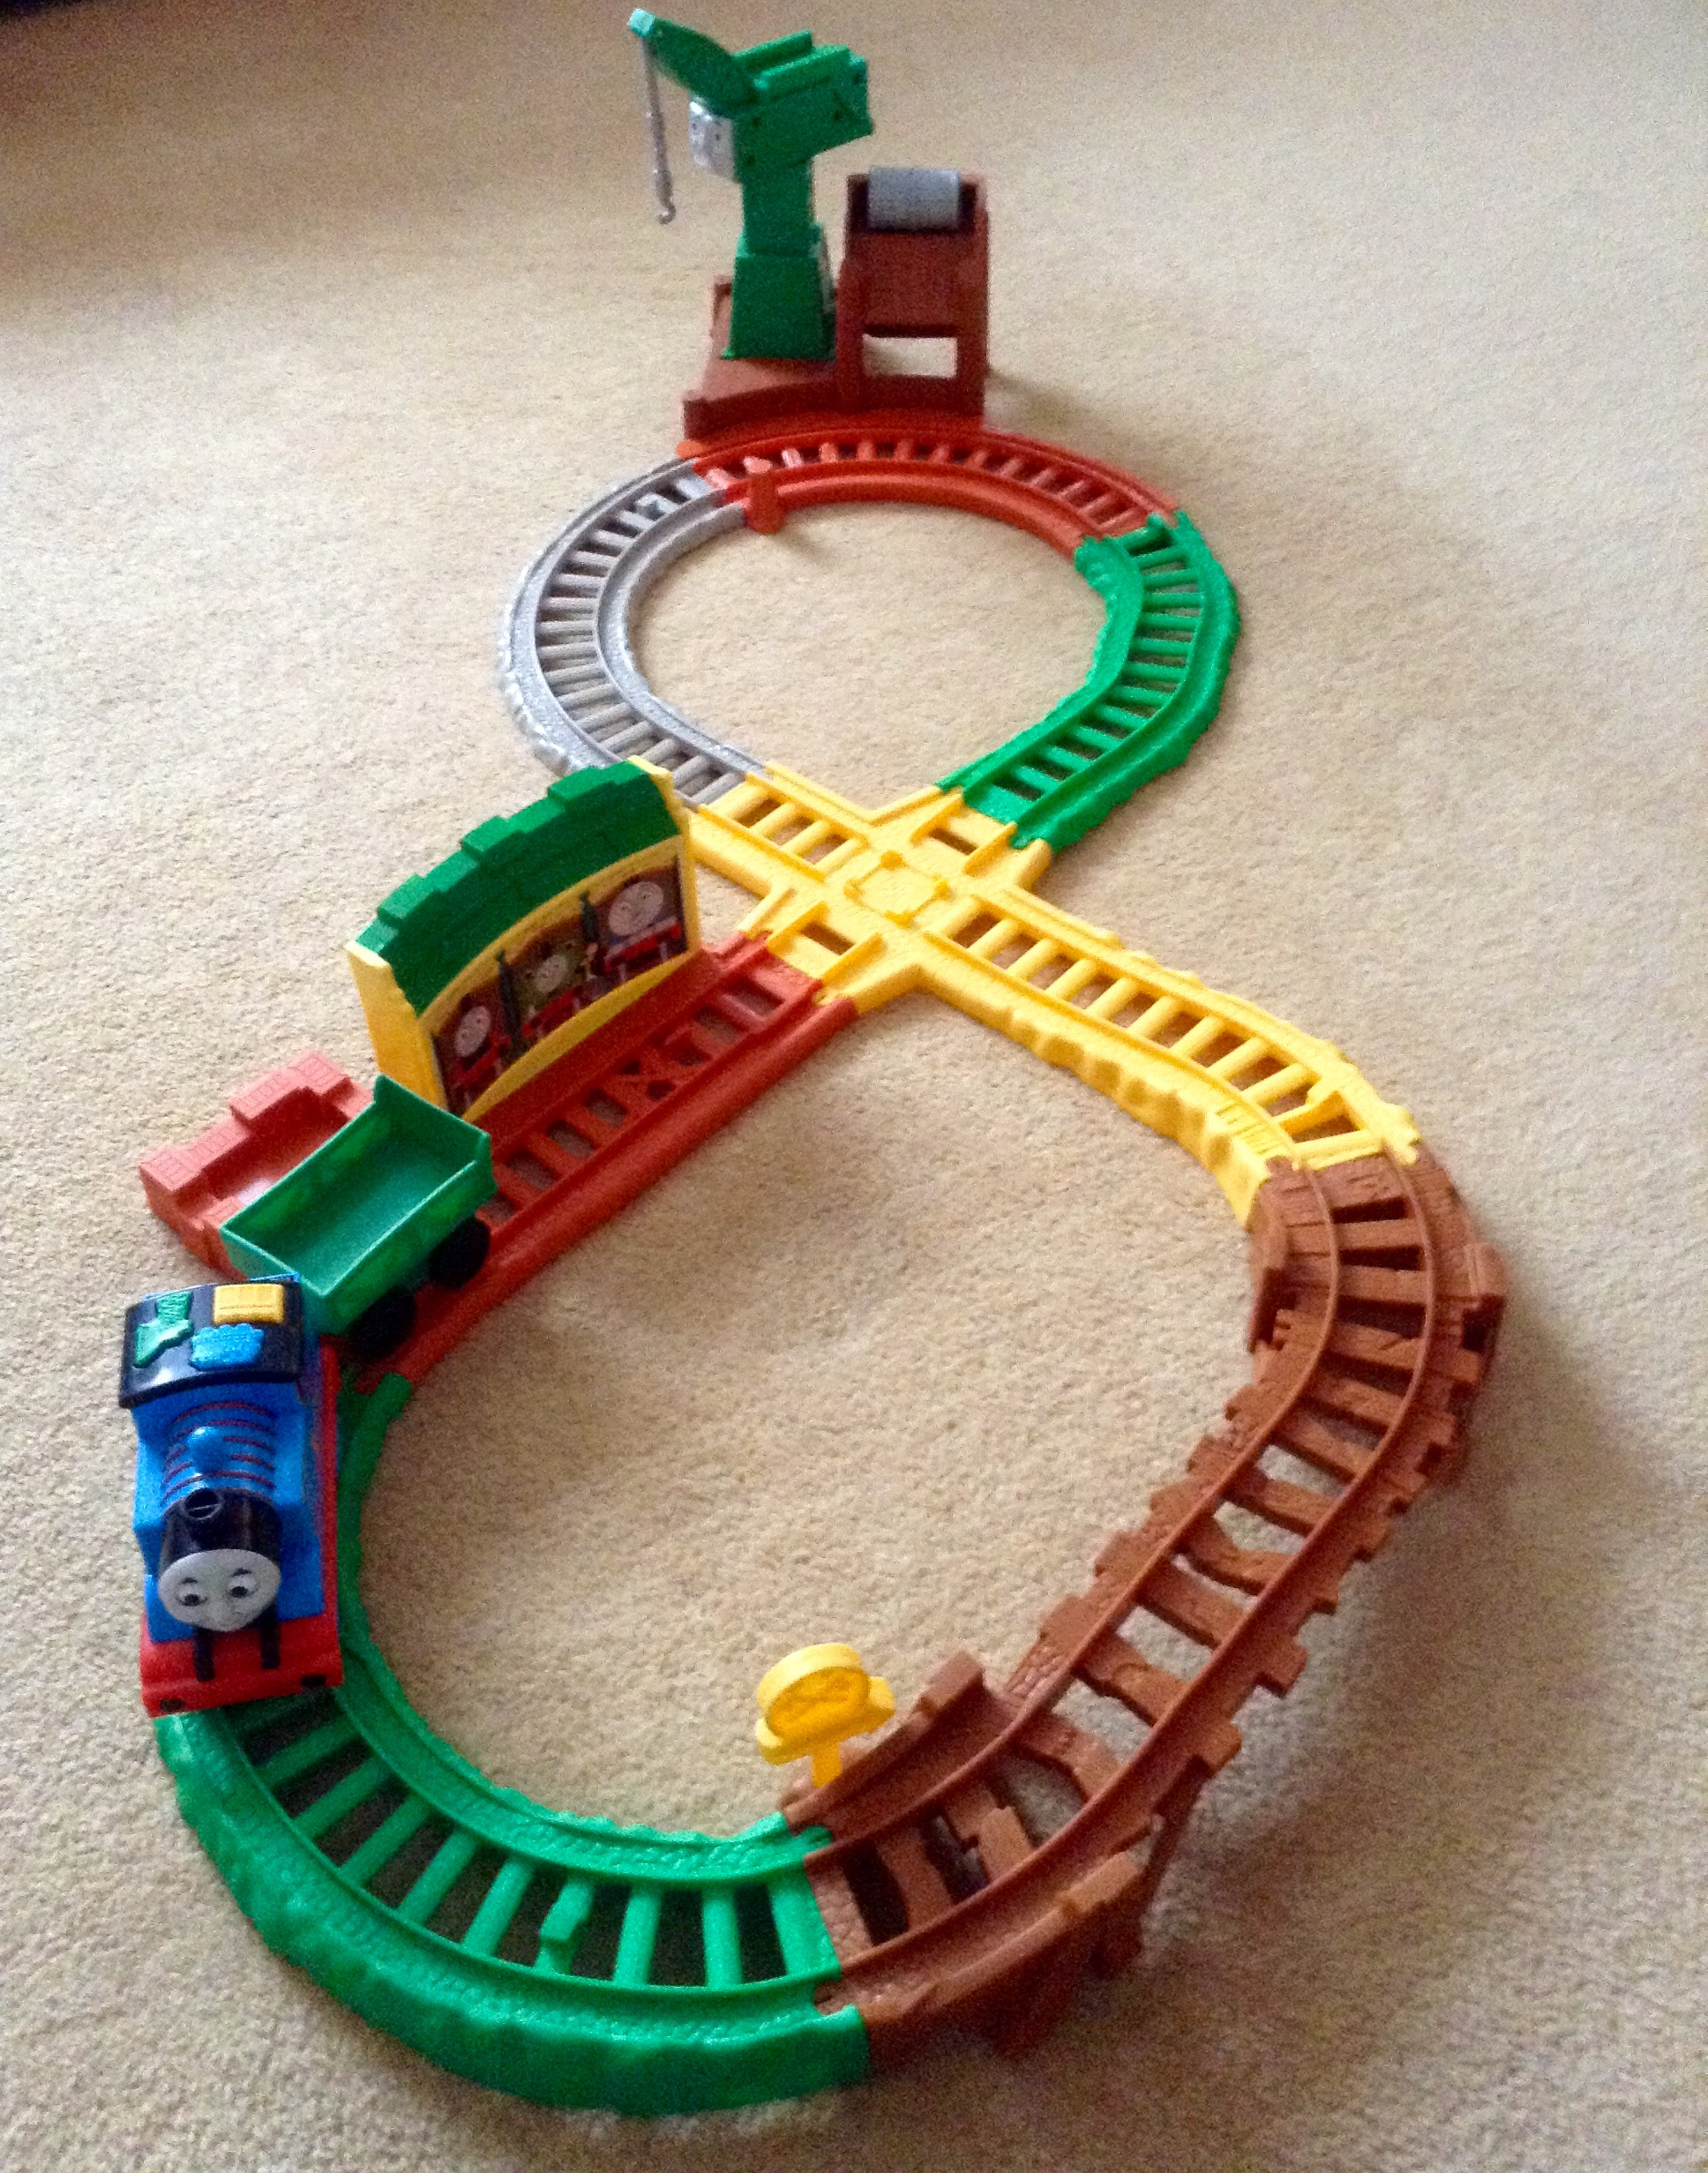 Thomas & Friends My First All Around Sodor. The full figure eight track with Thomas at Tidmouth sheds and cranky in the distance at the docks